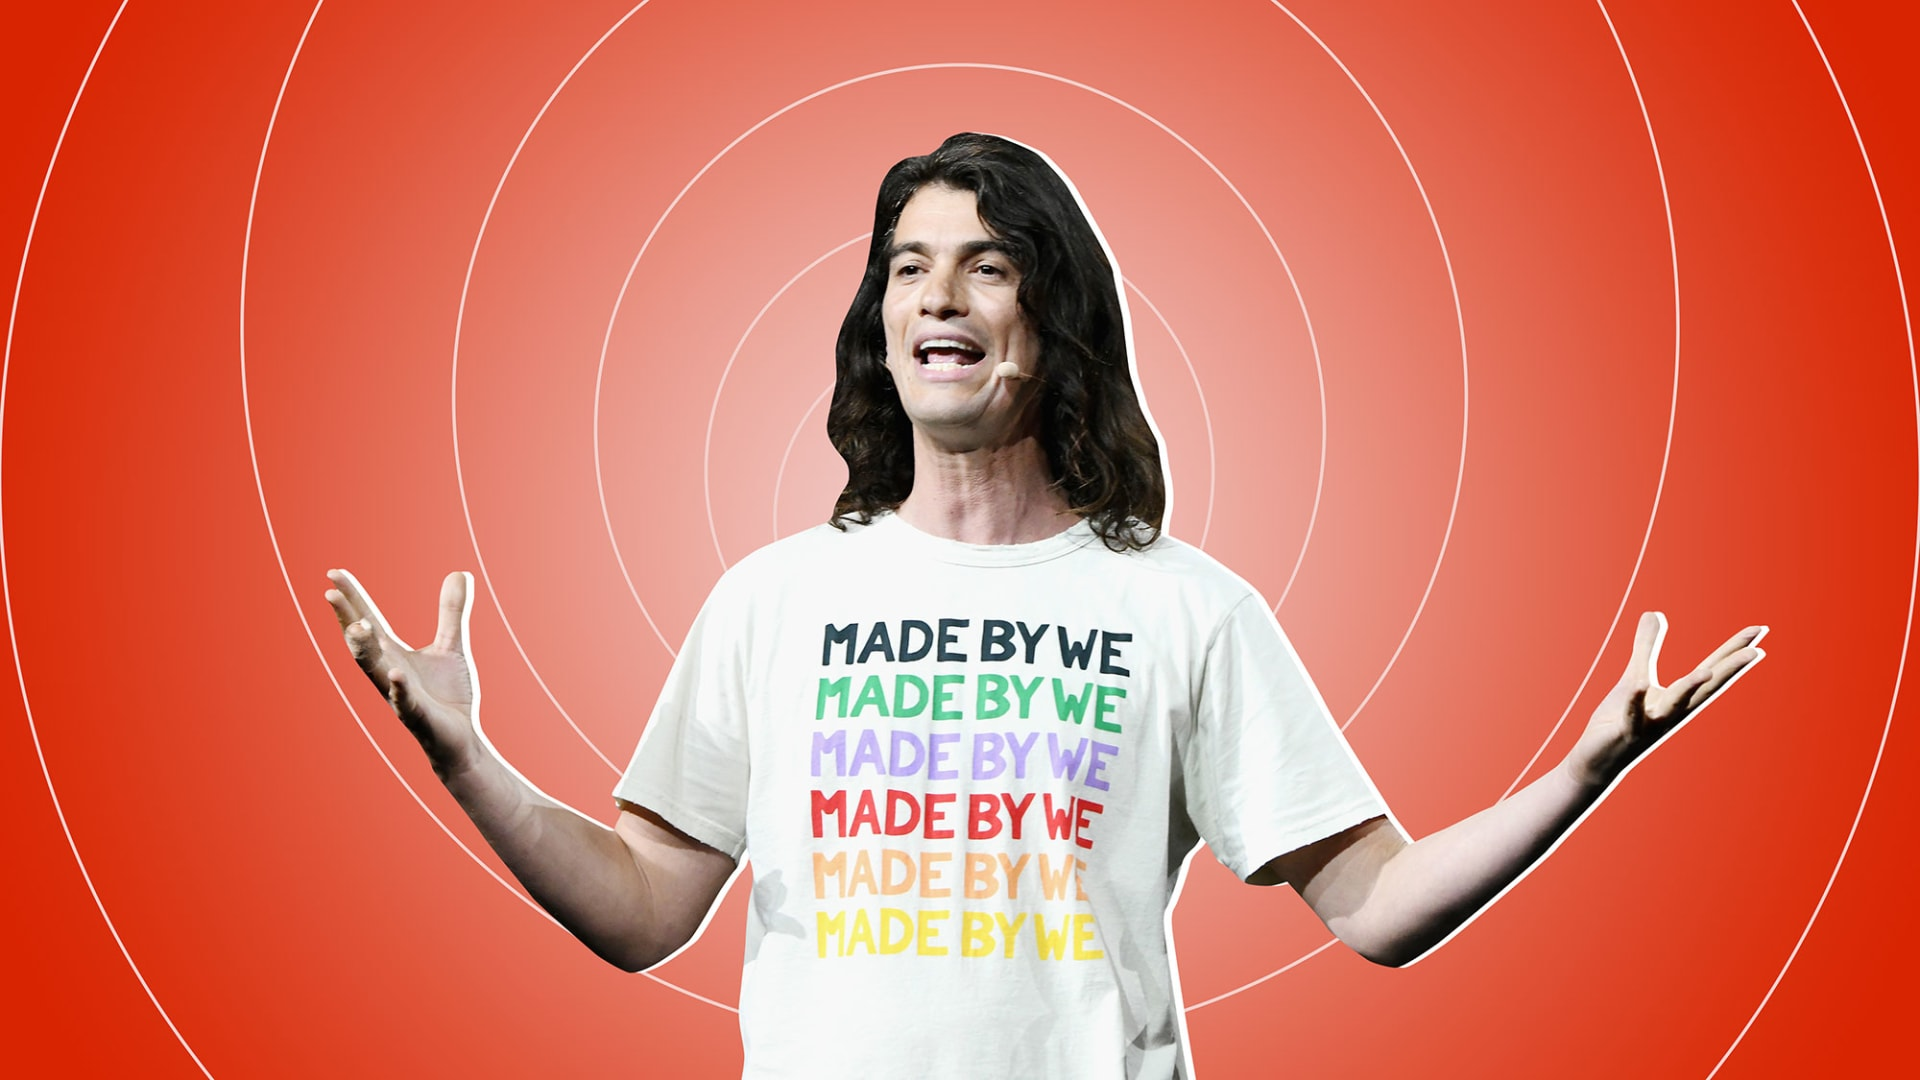 Hulu's WeWork Documentary: How Adam Neumann's Toxic Leadership Took Down a $47 Billion Unicorn